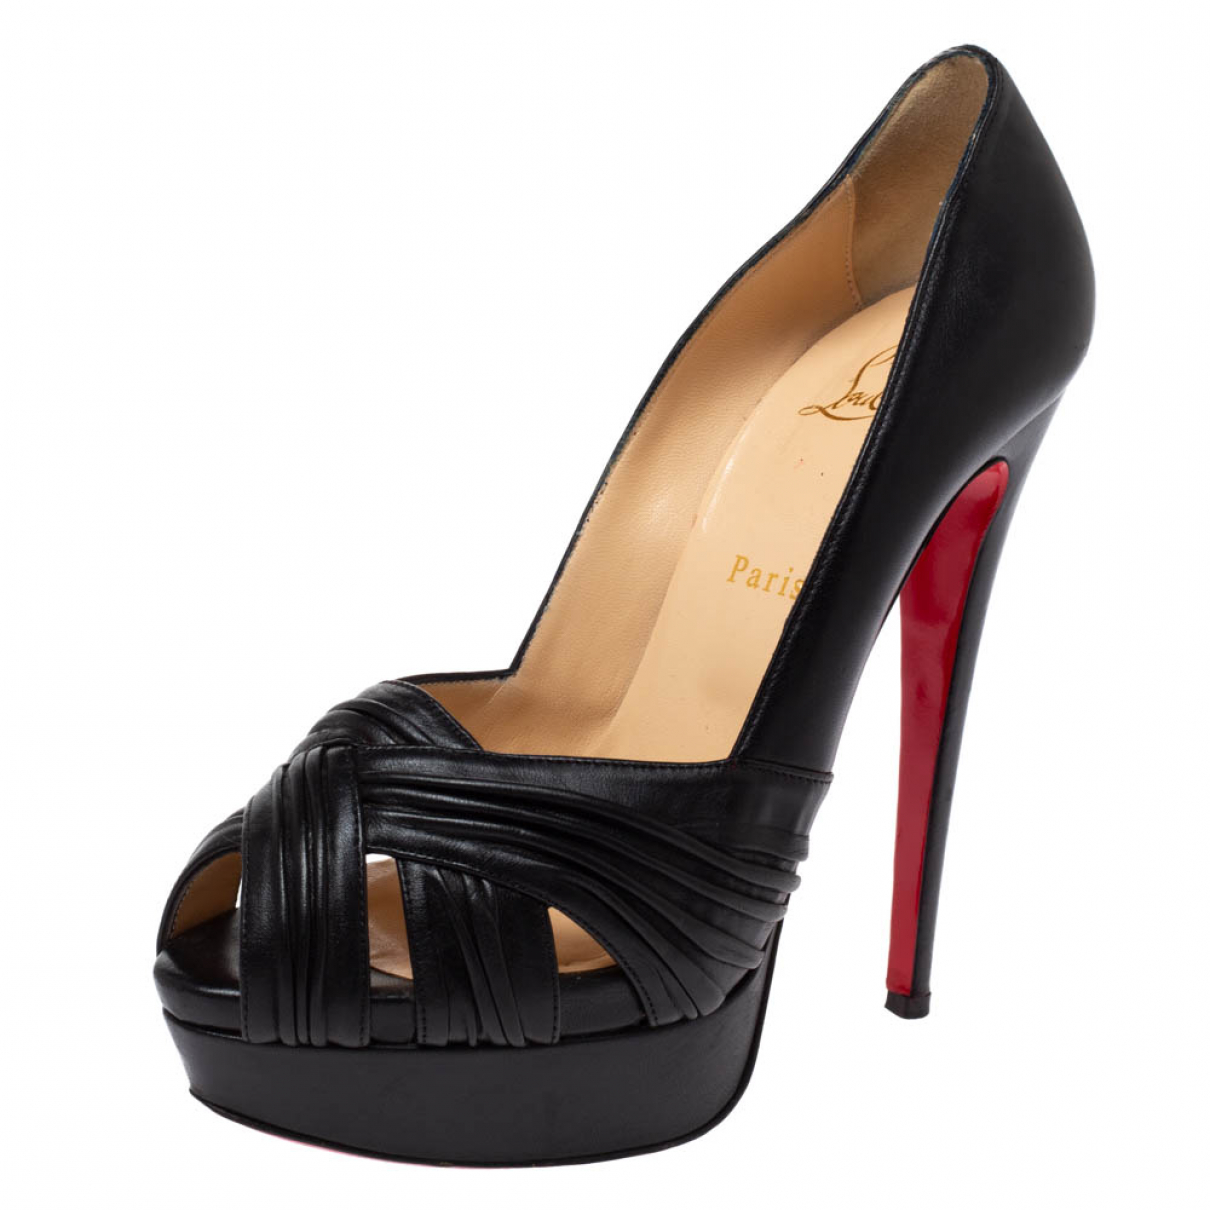 Christian Louboutin N Black Leather Sandals for Women 9.5 US